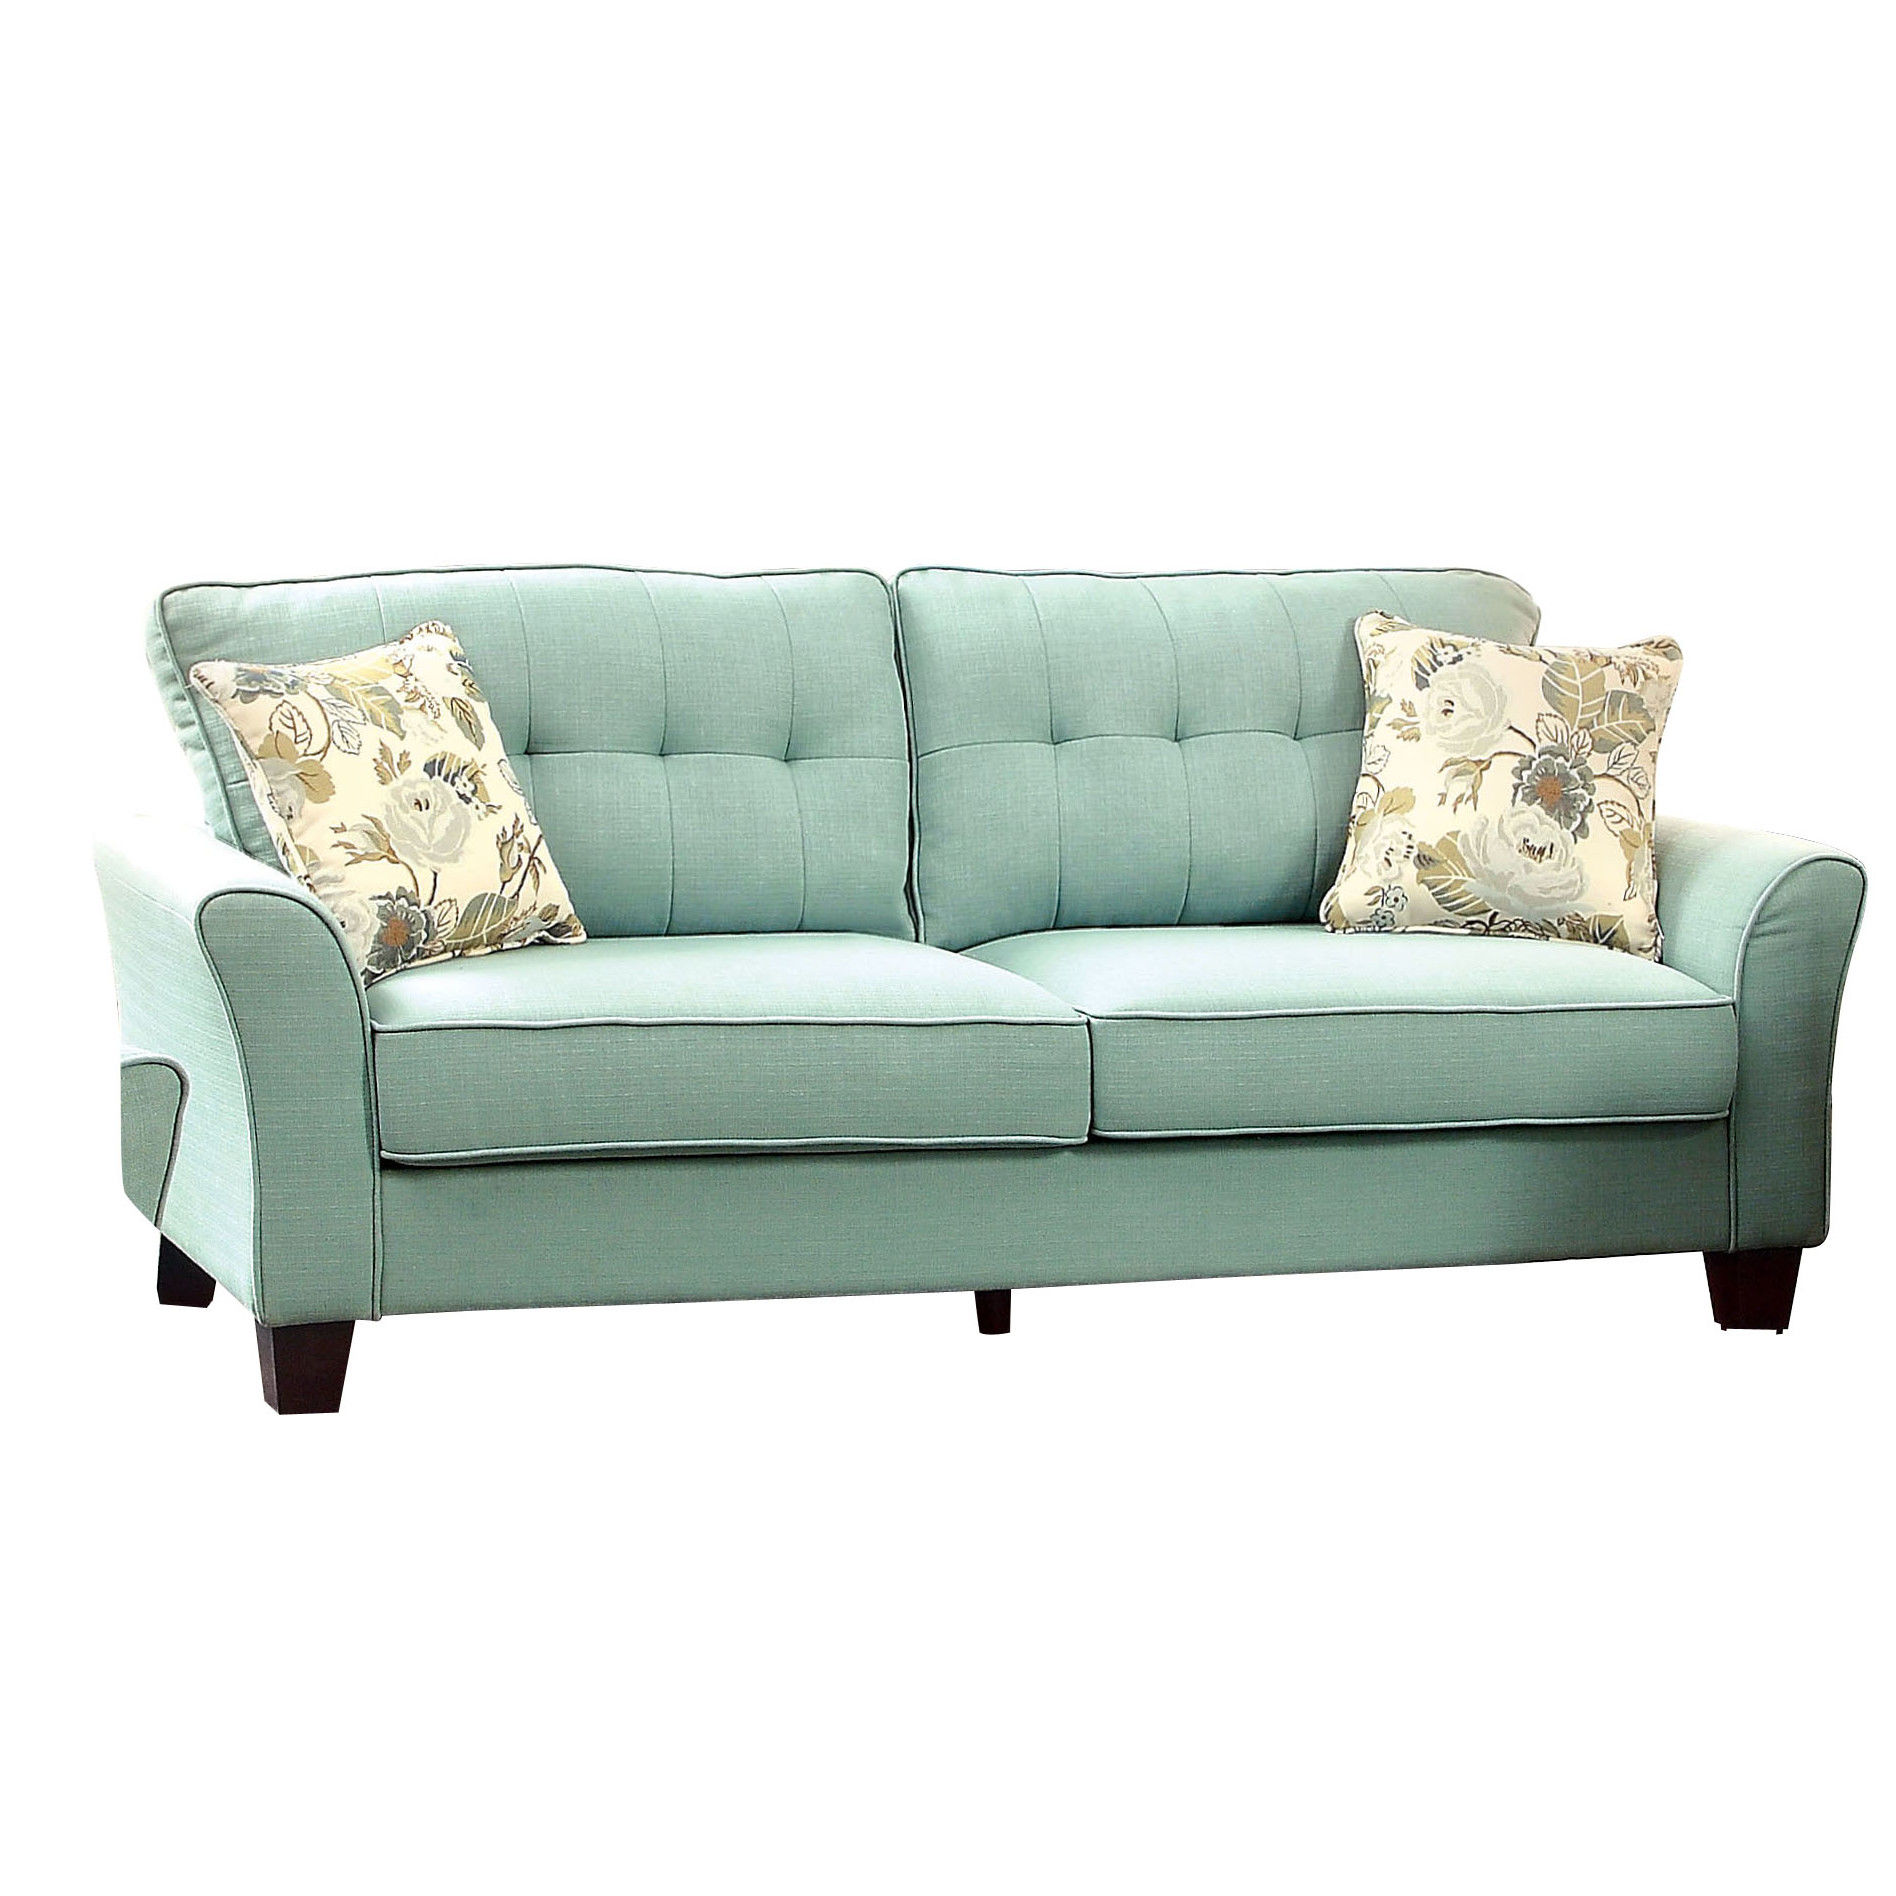 fascinating macy's furniture sofa design-New Macy's Furniture sofa Design